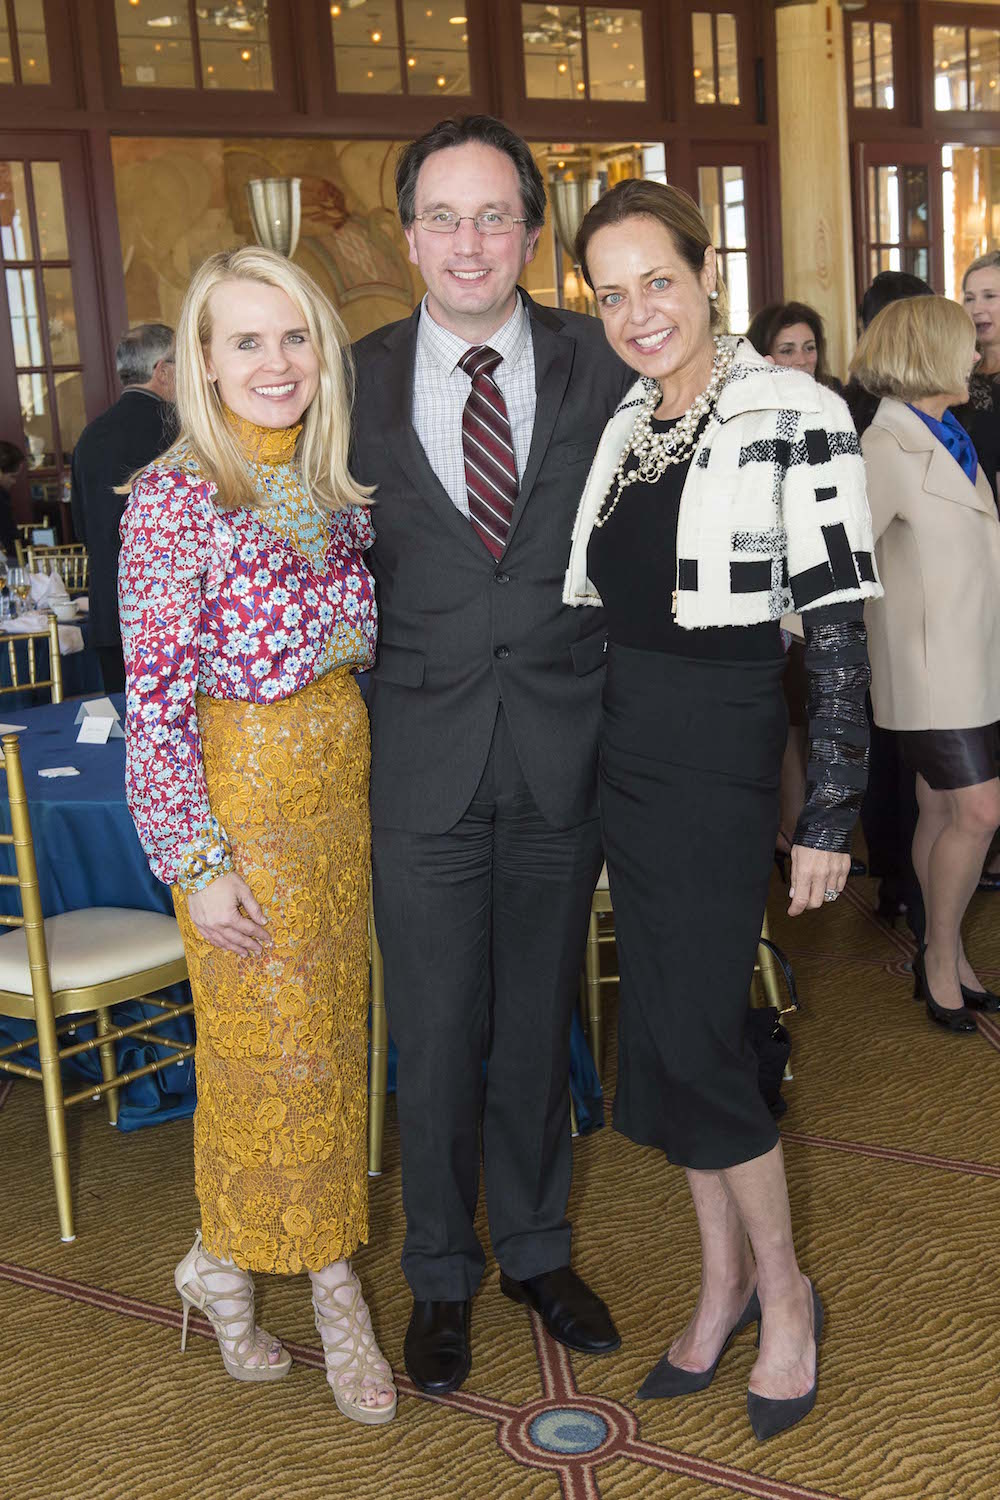 Jane Mudge, Matthew Shilvock and Charlot Malin attend the SF Opera Guild's annual luncheon on November 8, 2016